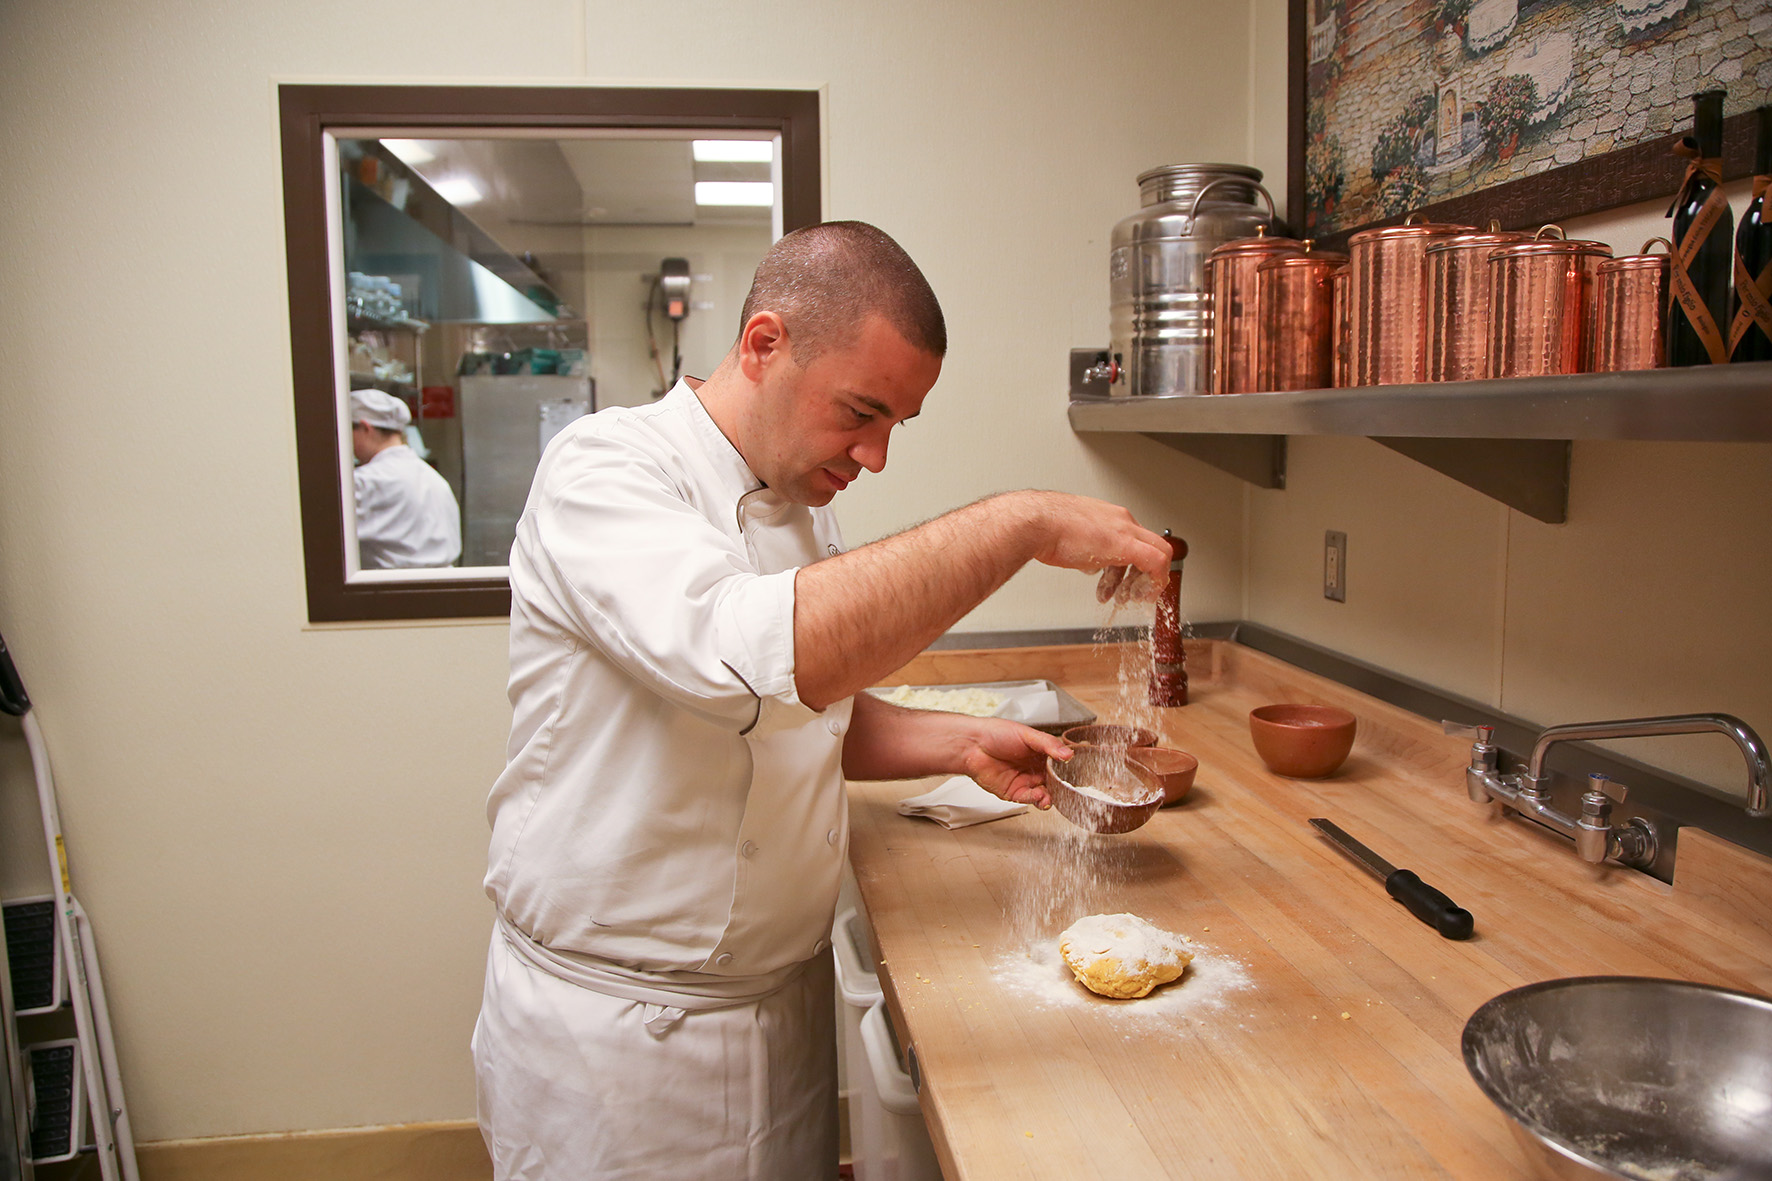 NBM_30_Chefs_Andreas_Chef Marco_By Jody Tiongco-16